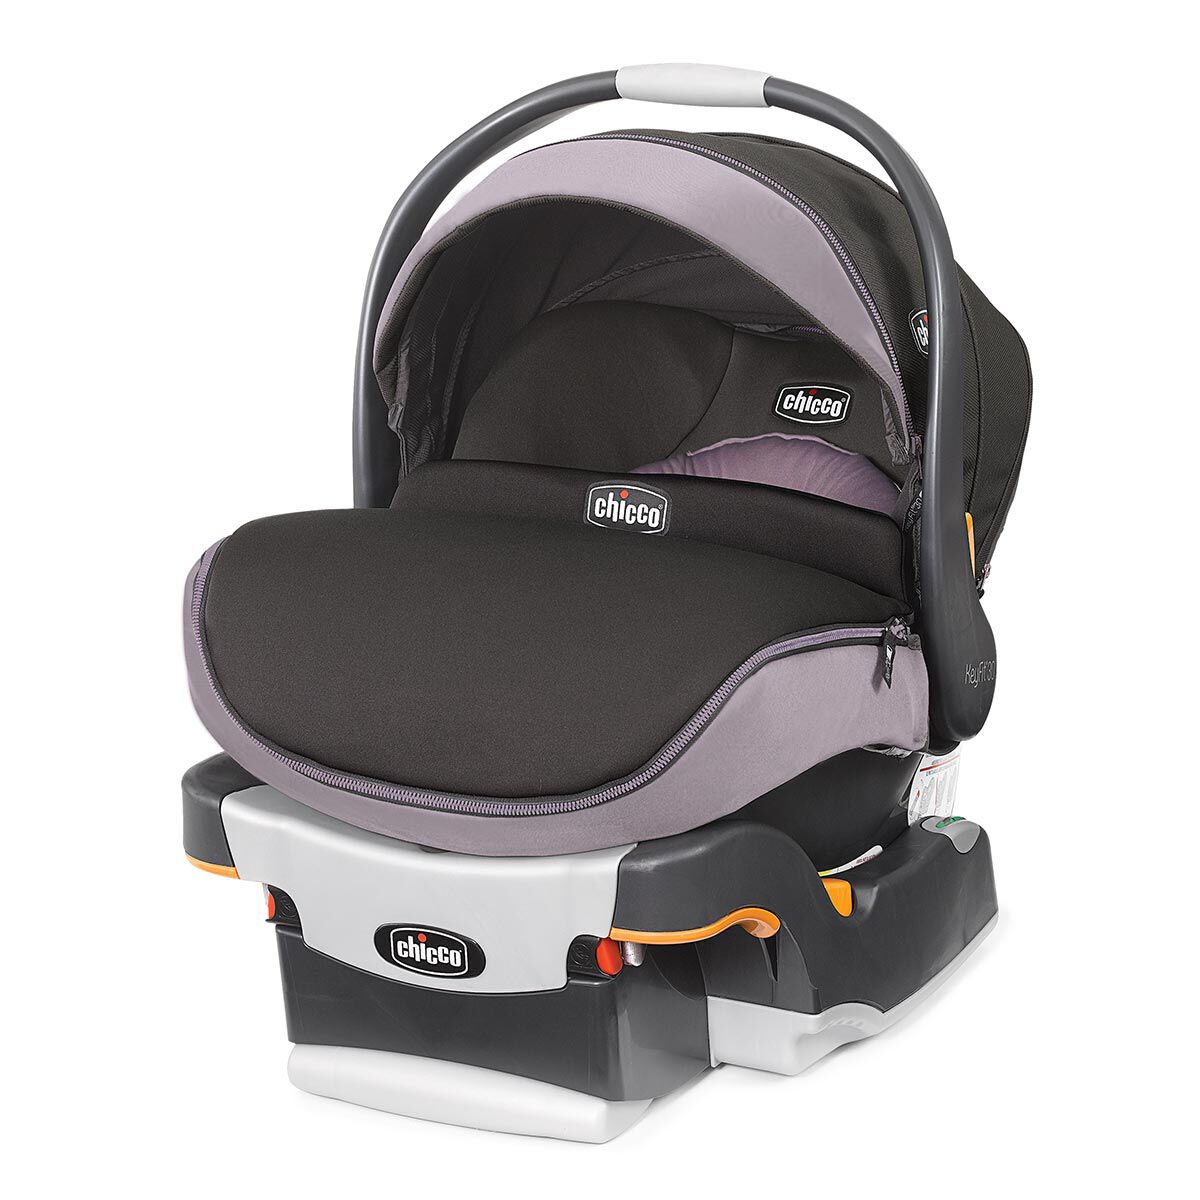 chicco infant car seat base. Black Bedroom Furniture Sets. Home Design Ideas